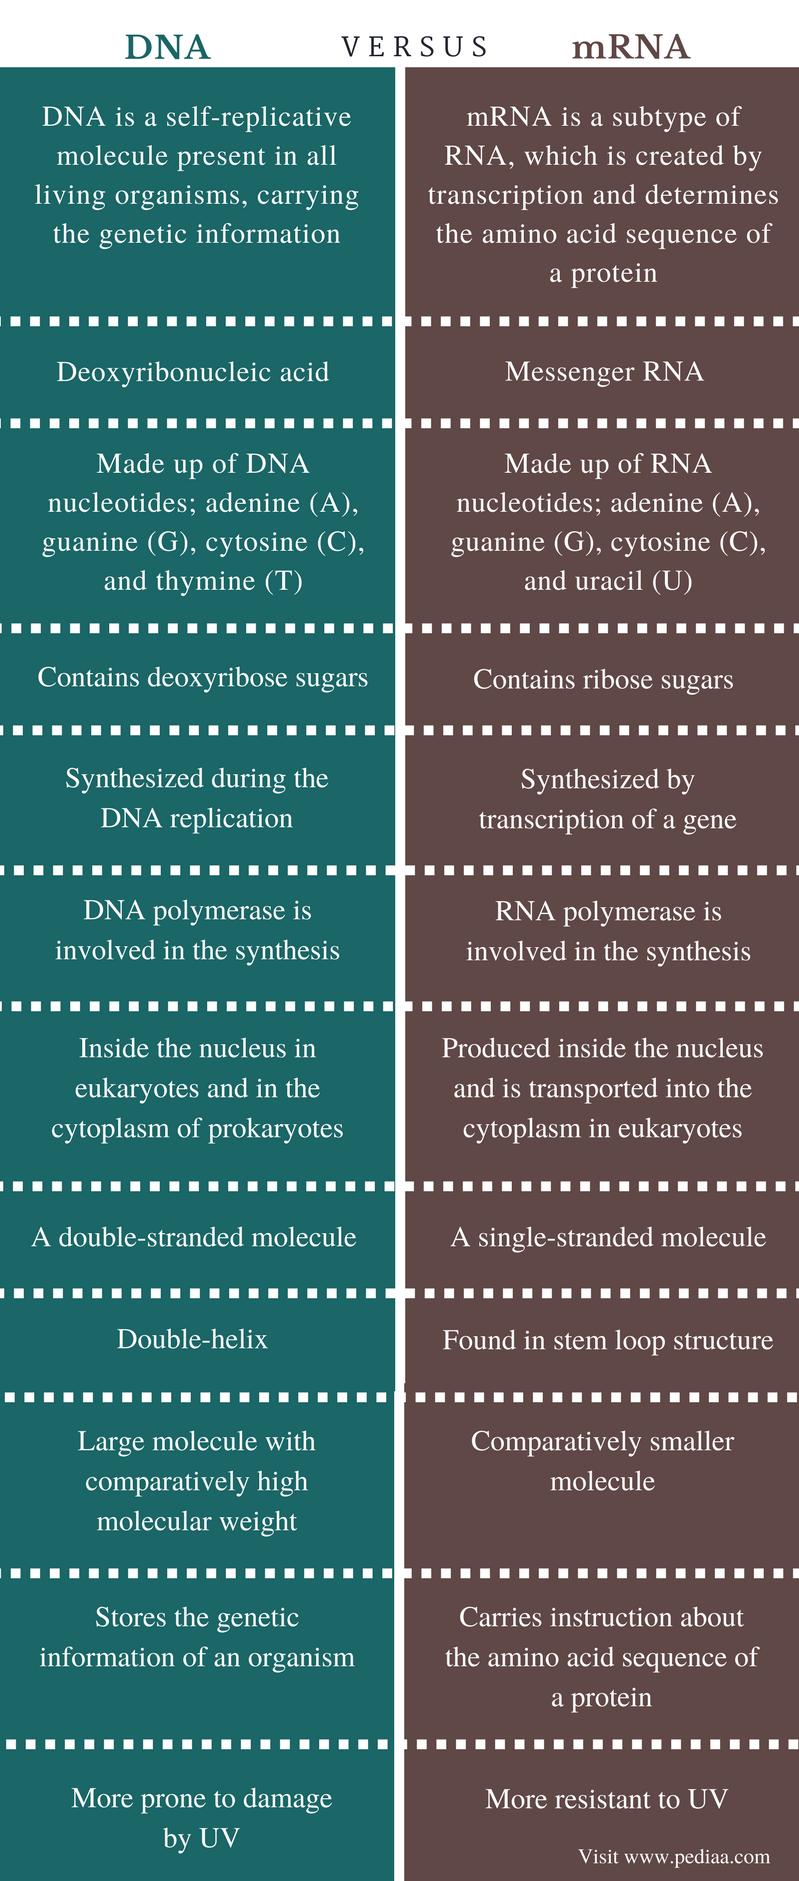 Difference Between DNA and mRNA - Comparison Summary